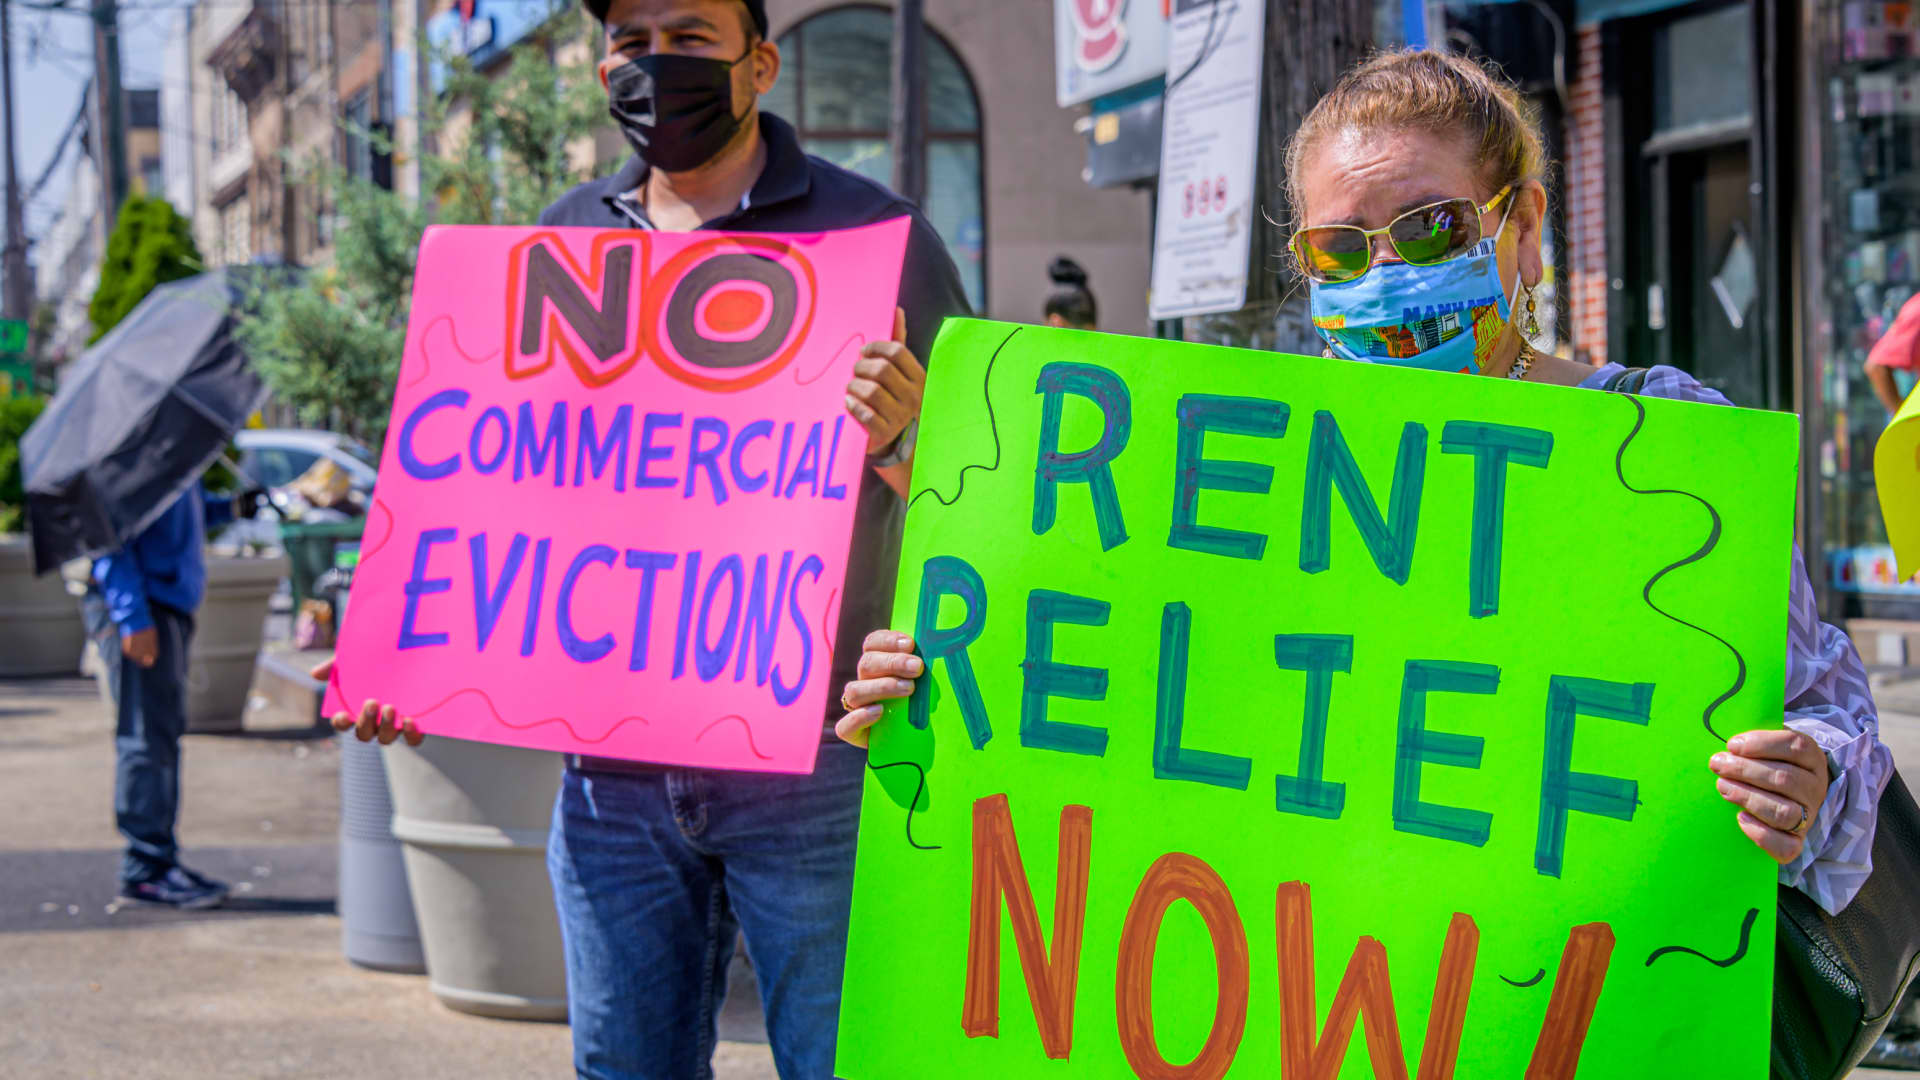 Small-business owners and community activists demonstrate for rent relief in the Bushwick neighborhood of Brooklyn, New York.